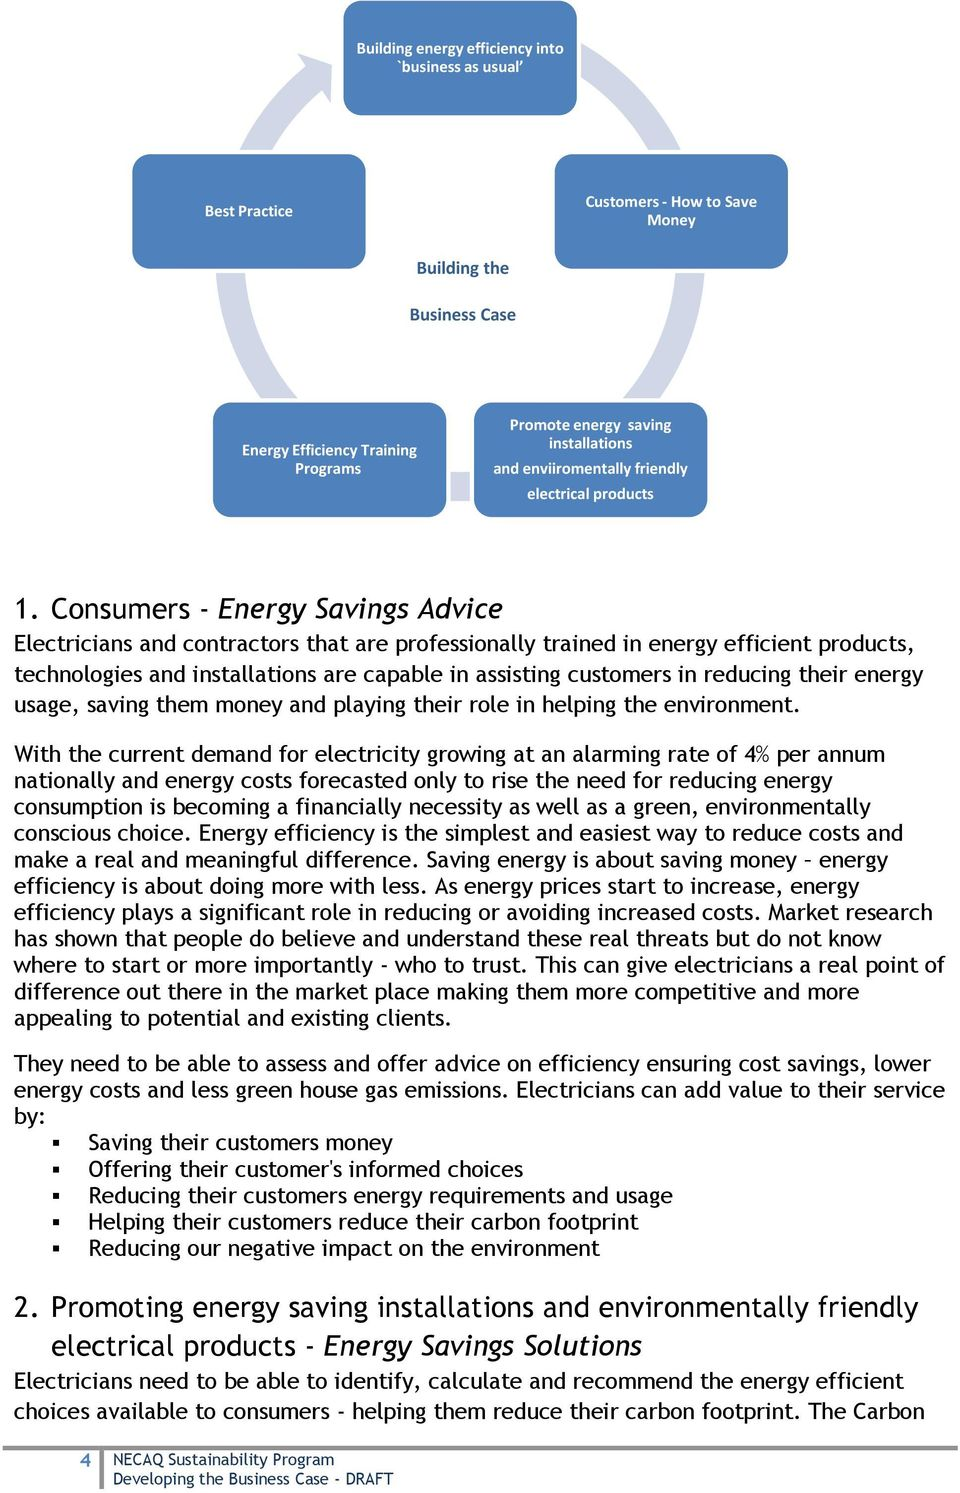 Consumers - Energy Savings Advice Electricians and contractors that are professionally trained in energy efficient products, technologies and installations are capable in assisting customers in